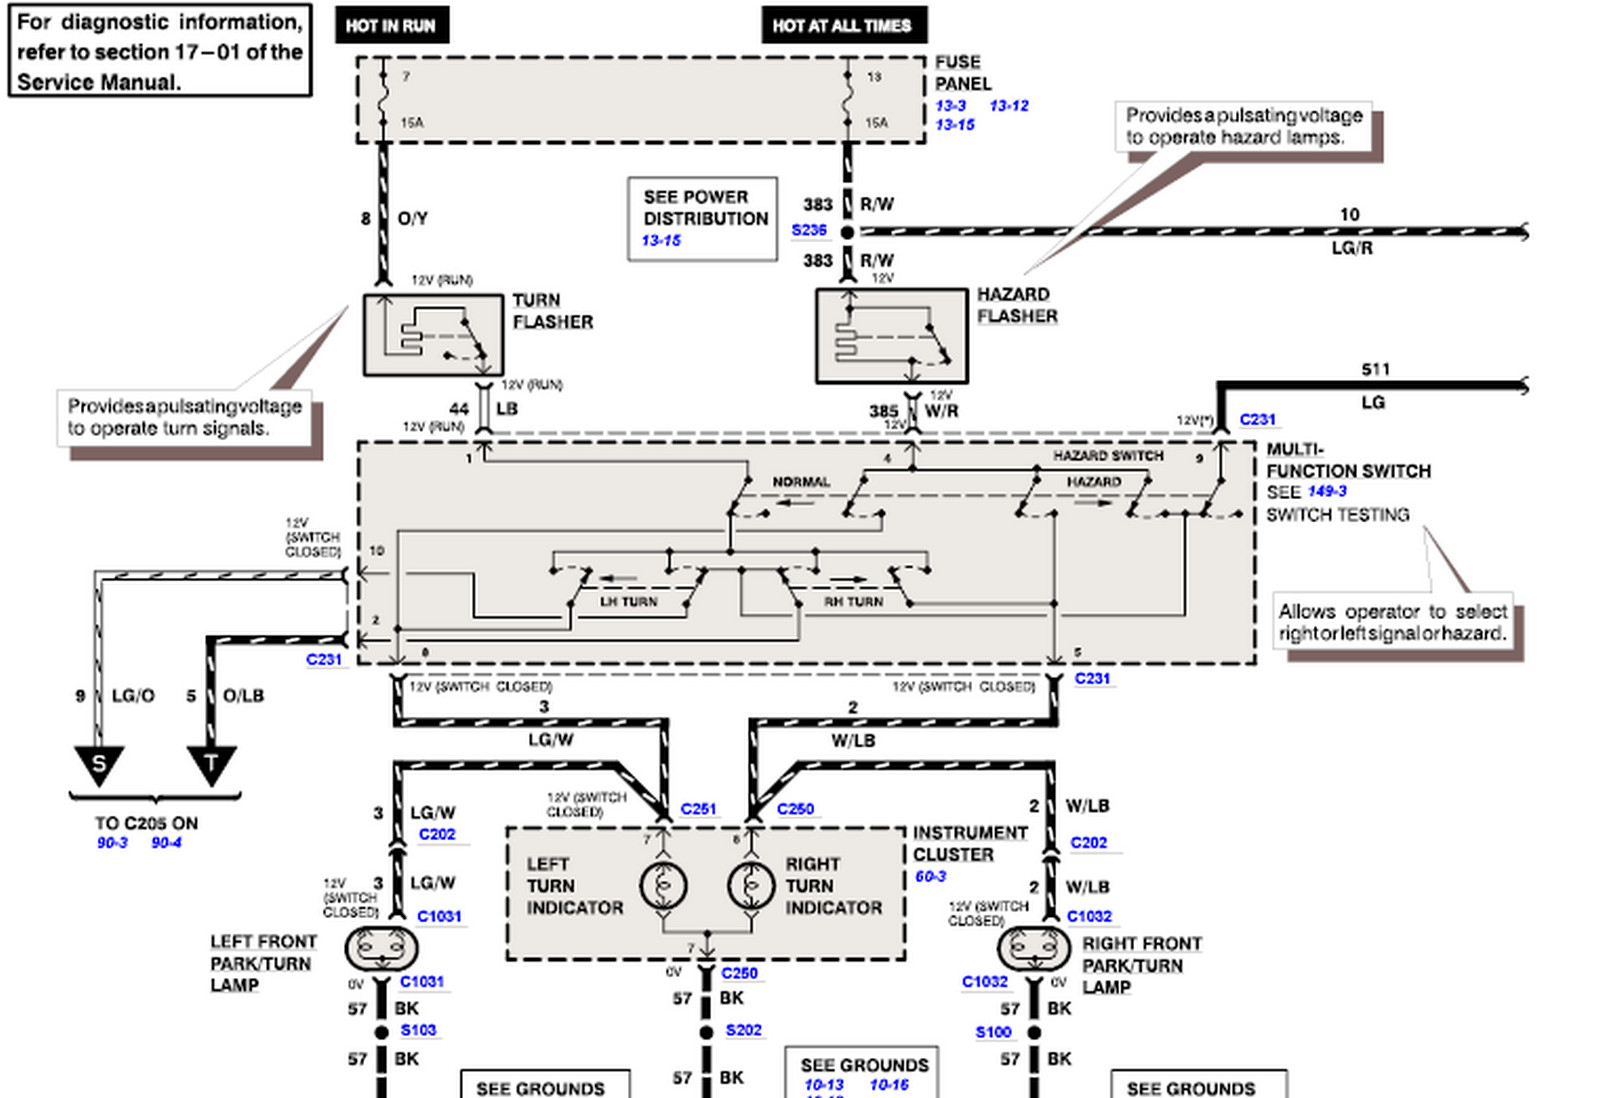 2010 F250 Wiring Diagram | Best Wiring Library - 2008 Ford F350 Trailer Wiring Diagram